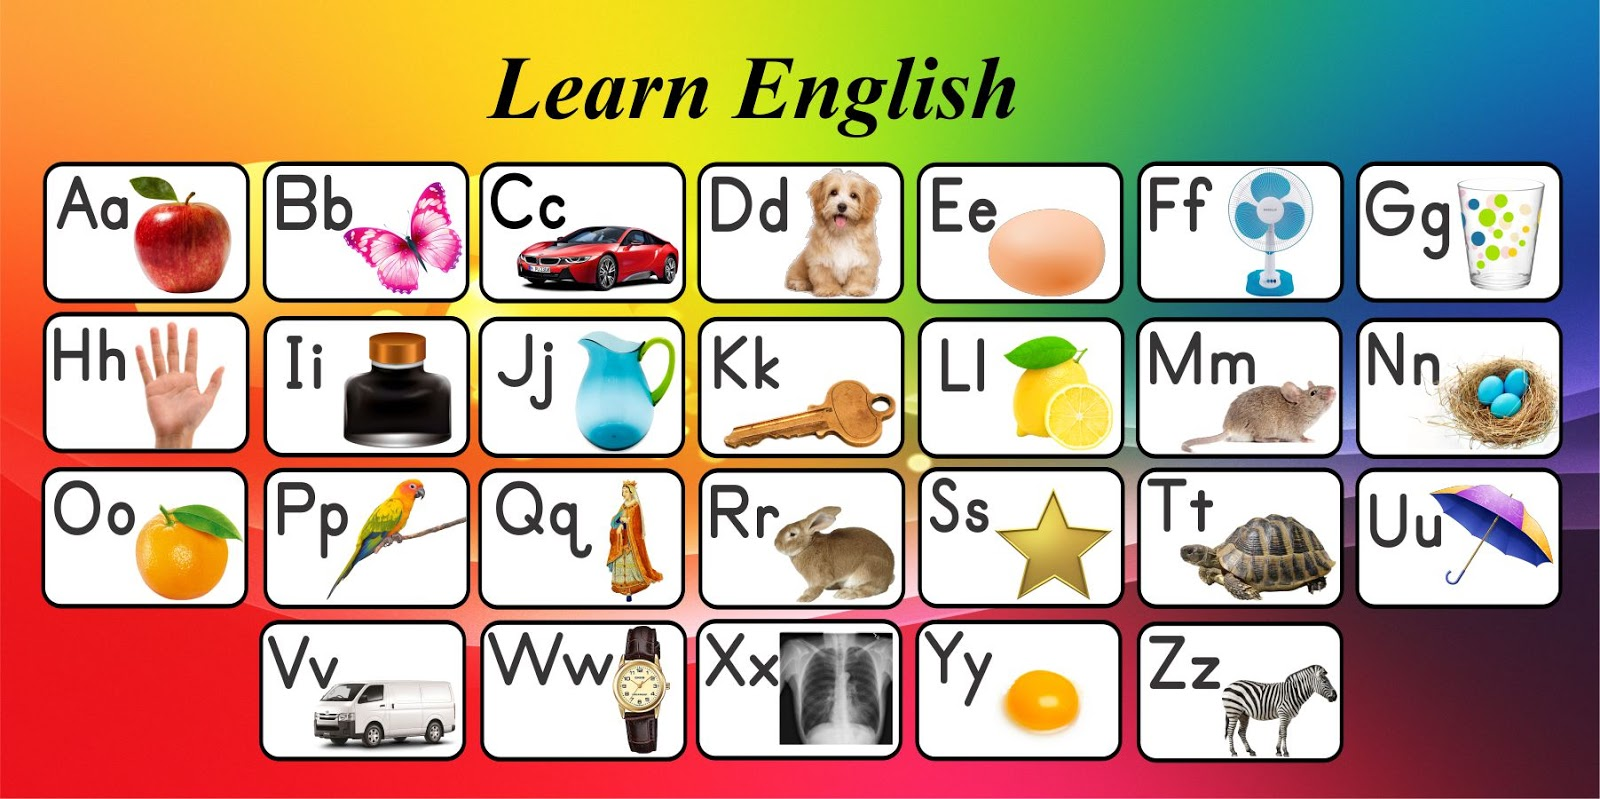 Abc english alphabets chart pena flex for kids room ece school preschool also goraya mobile and computer rh gorayamobilespot